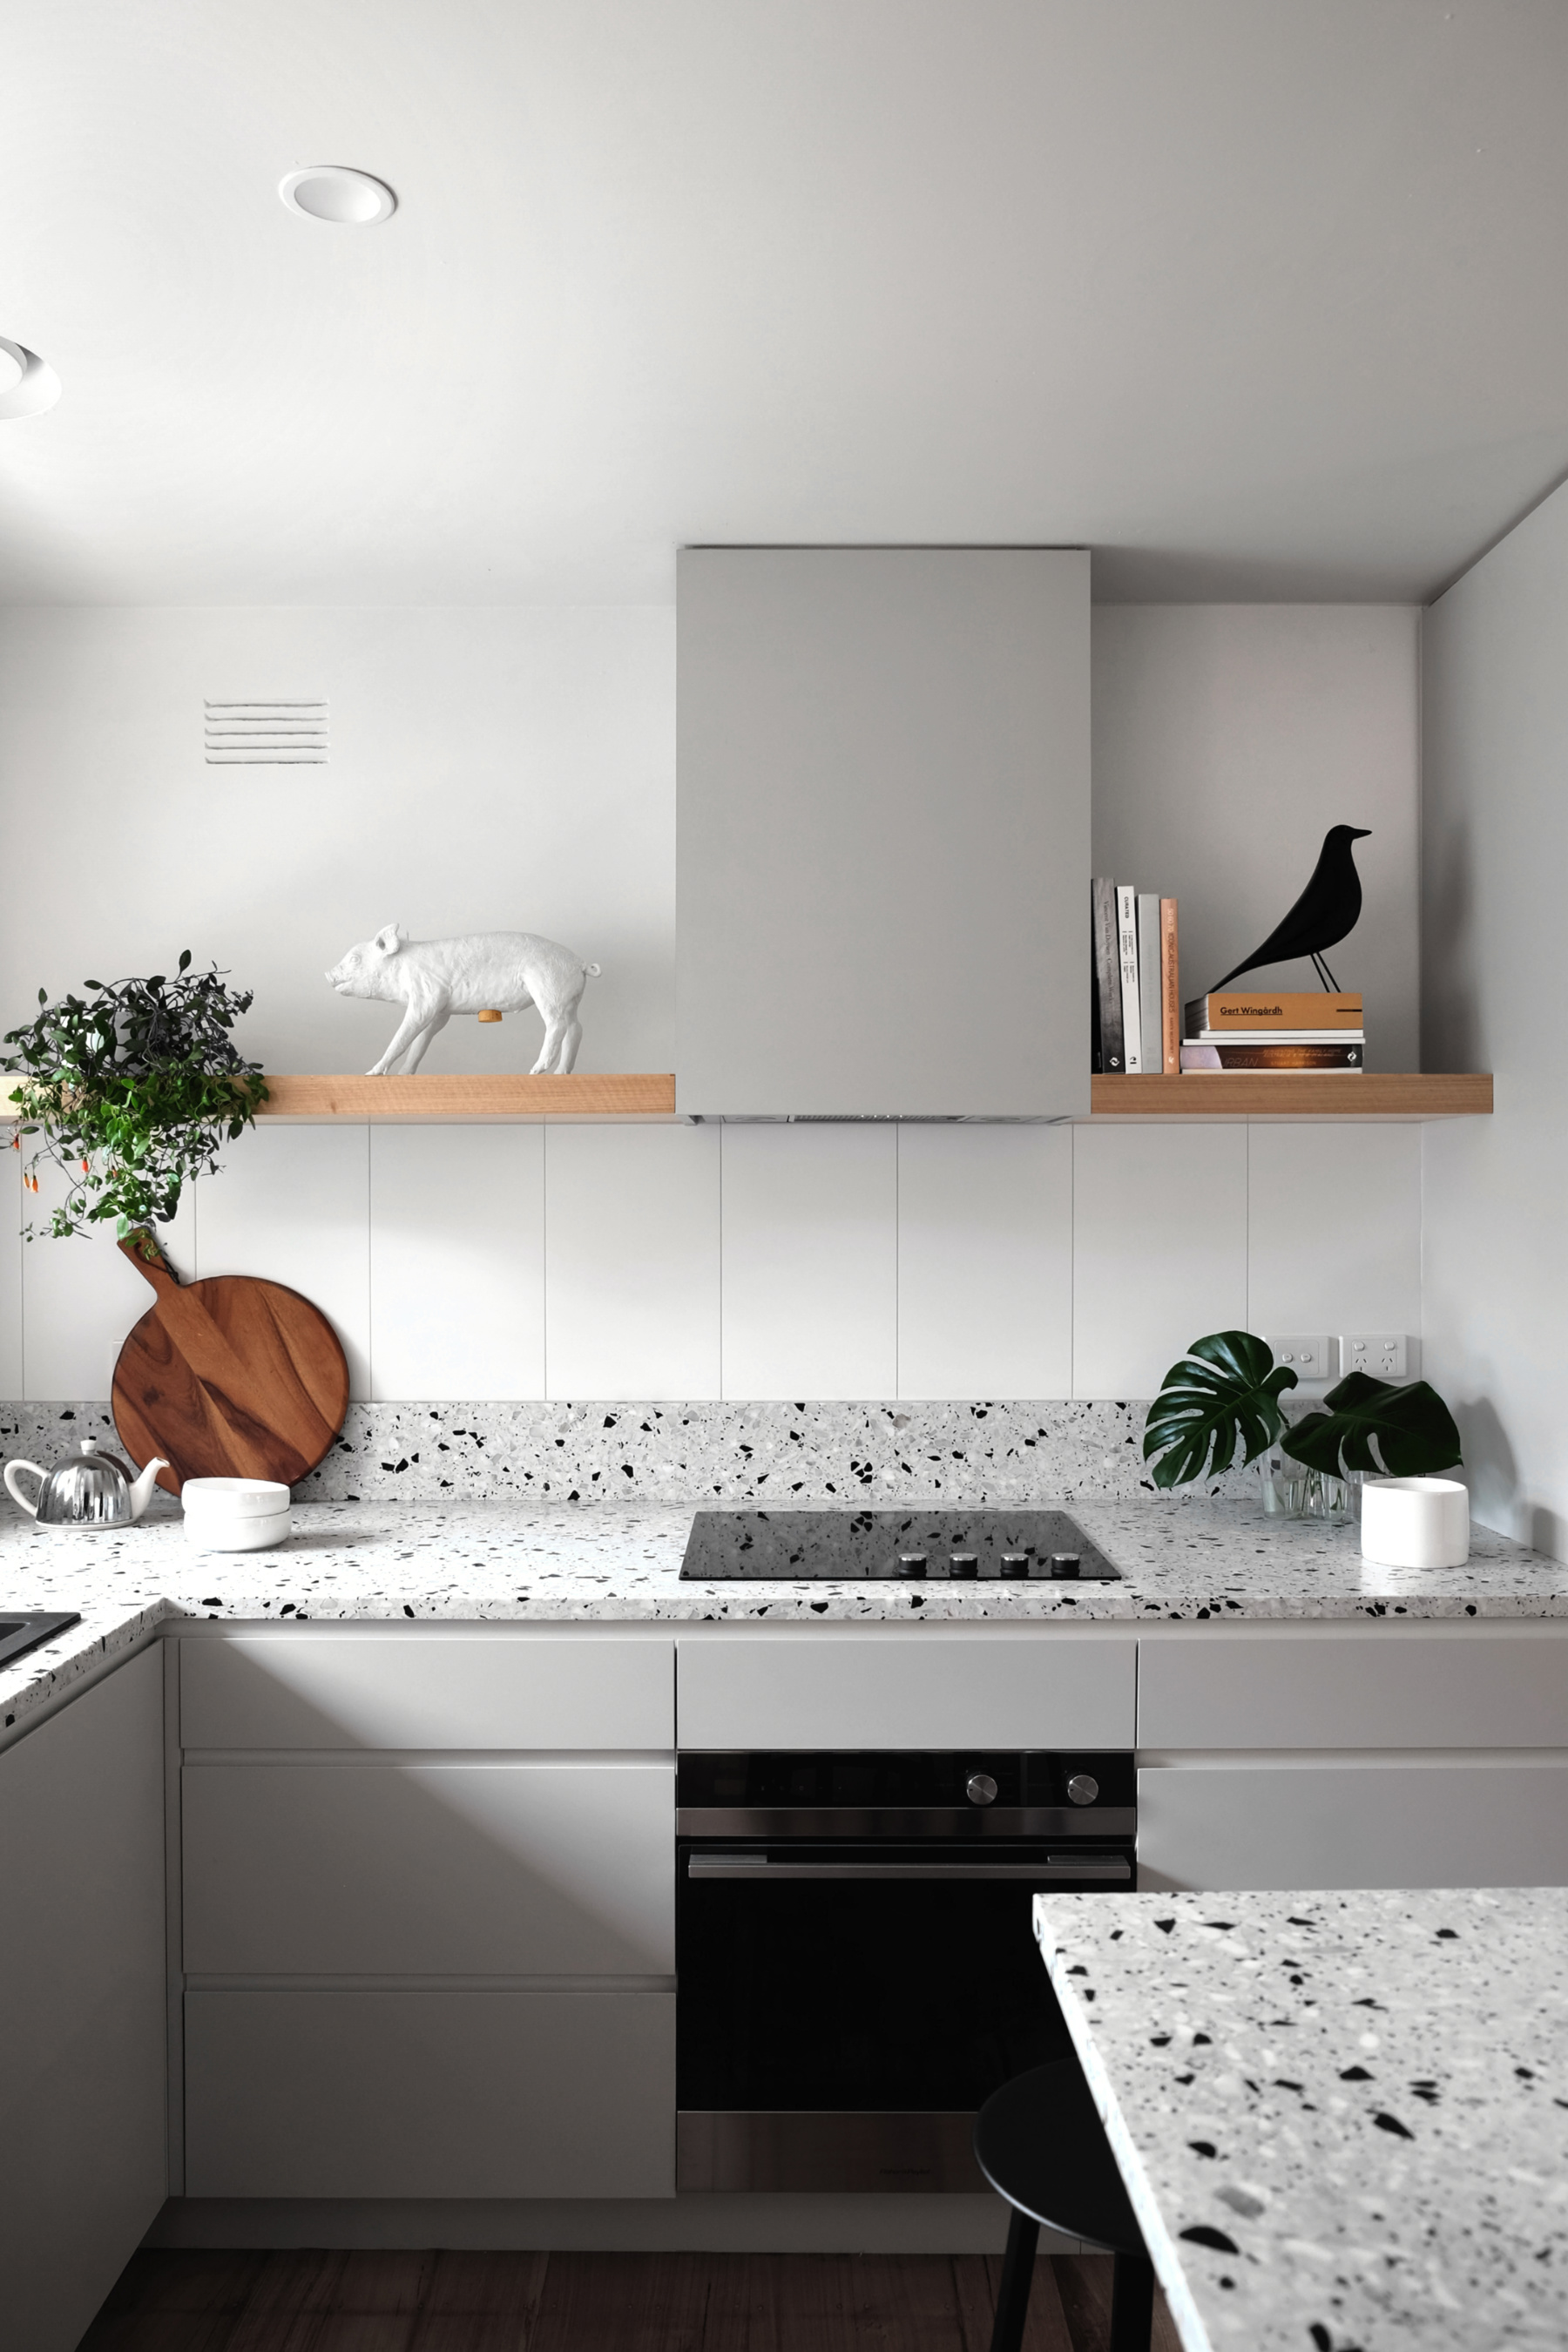 An example of  Signorino product  (supplied image - not Lifespaces Group kitchen)